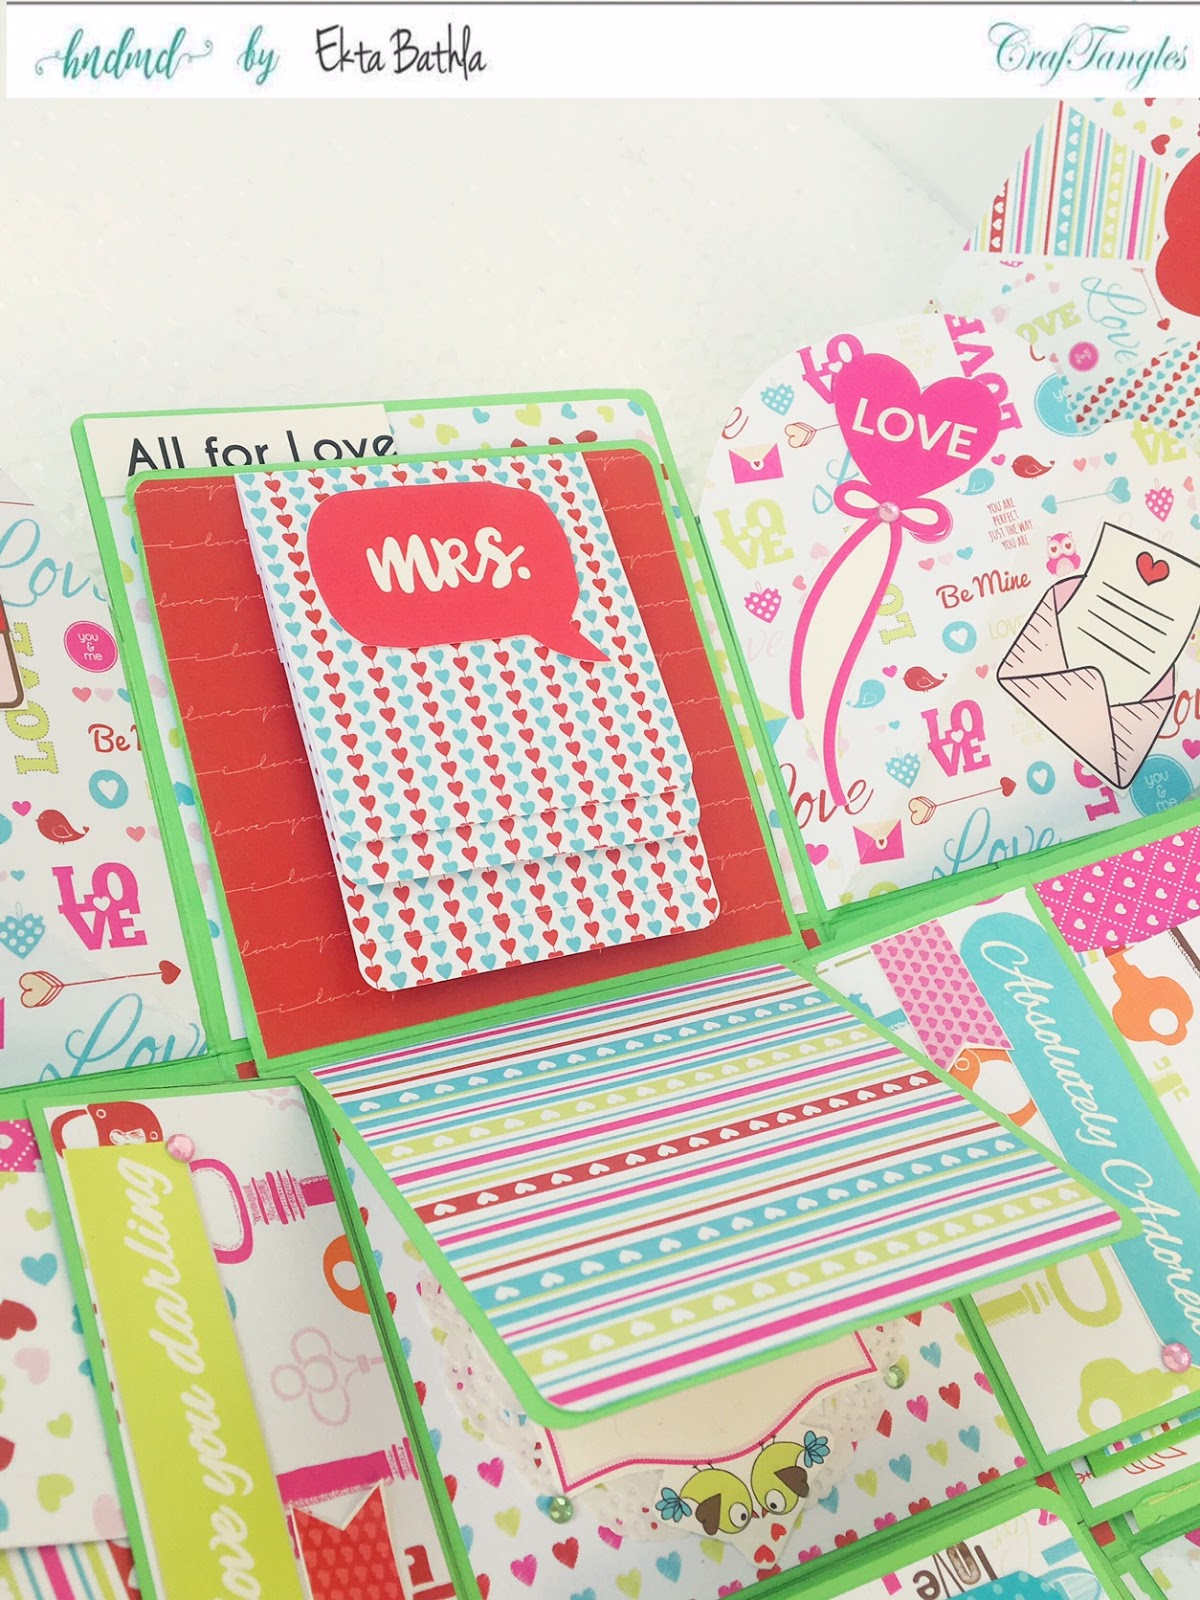 Love themed explosion box using CrafTangles Be My Valentine paper and element packs 22